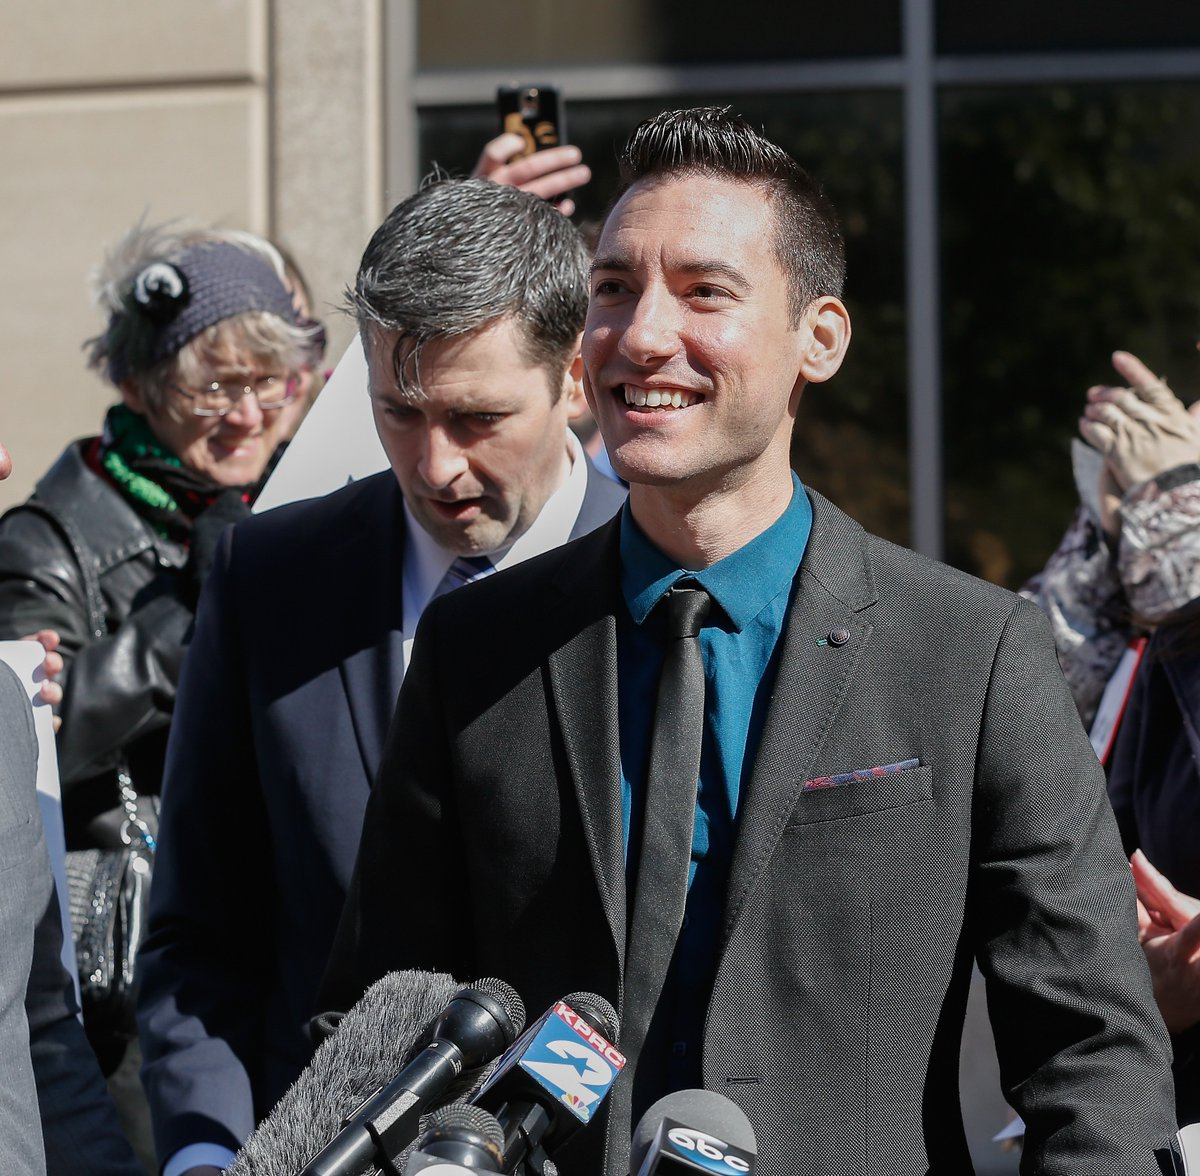 Last charges dropped in case over PlannedParenthood videos